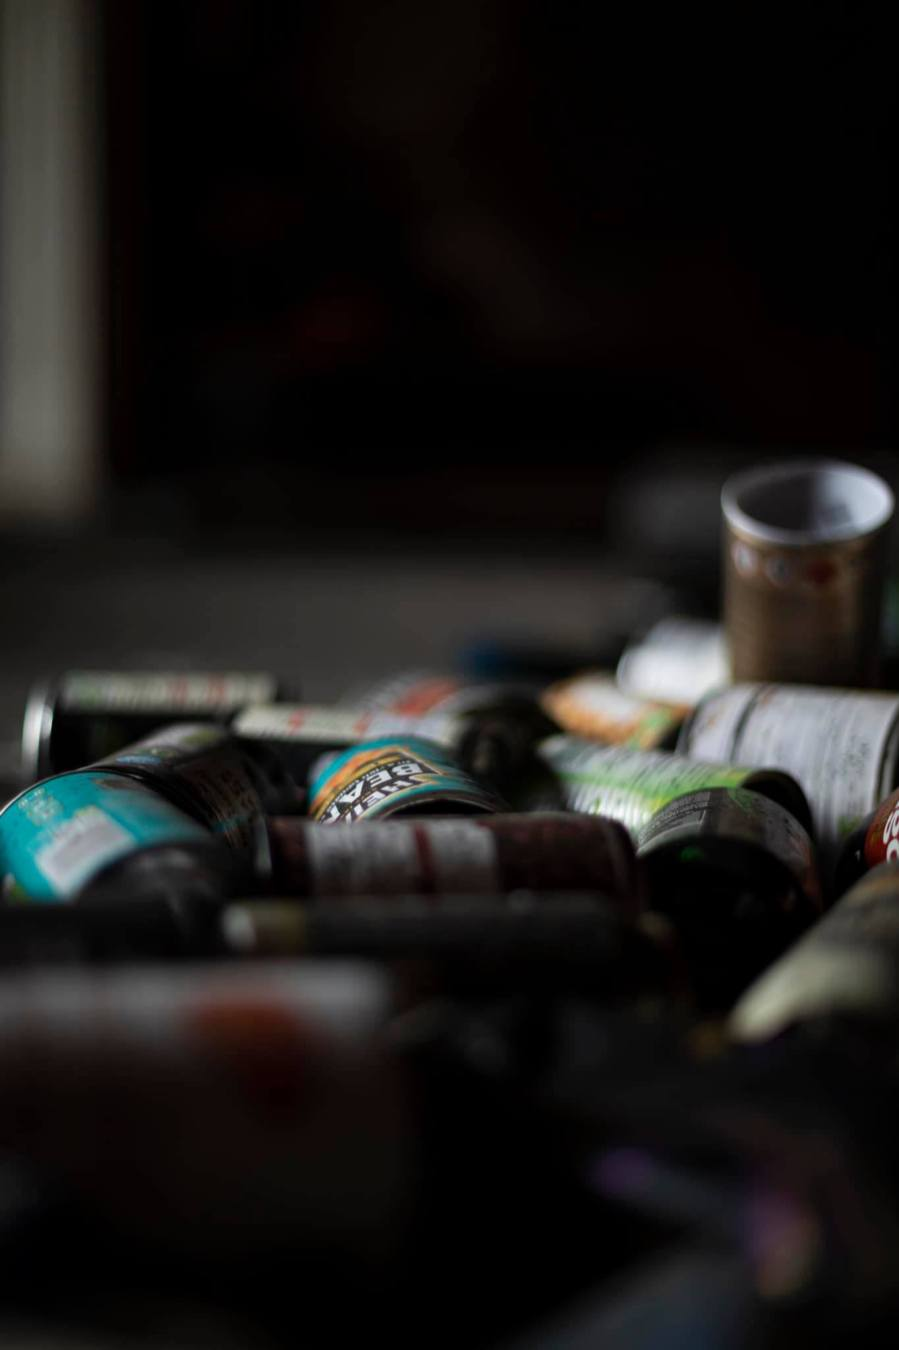 my-dog-sighs-cans